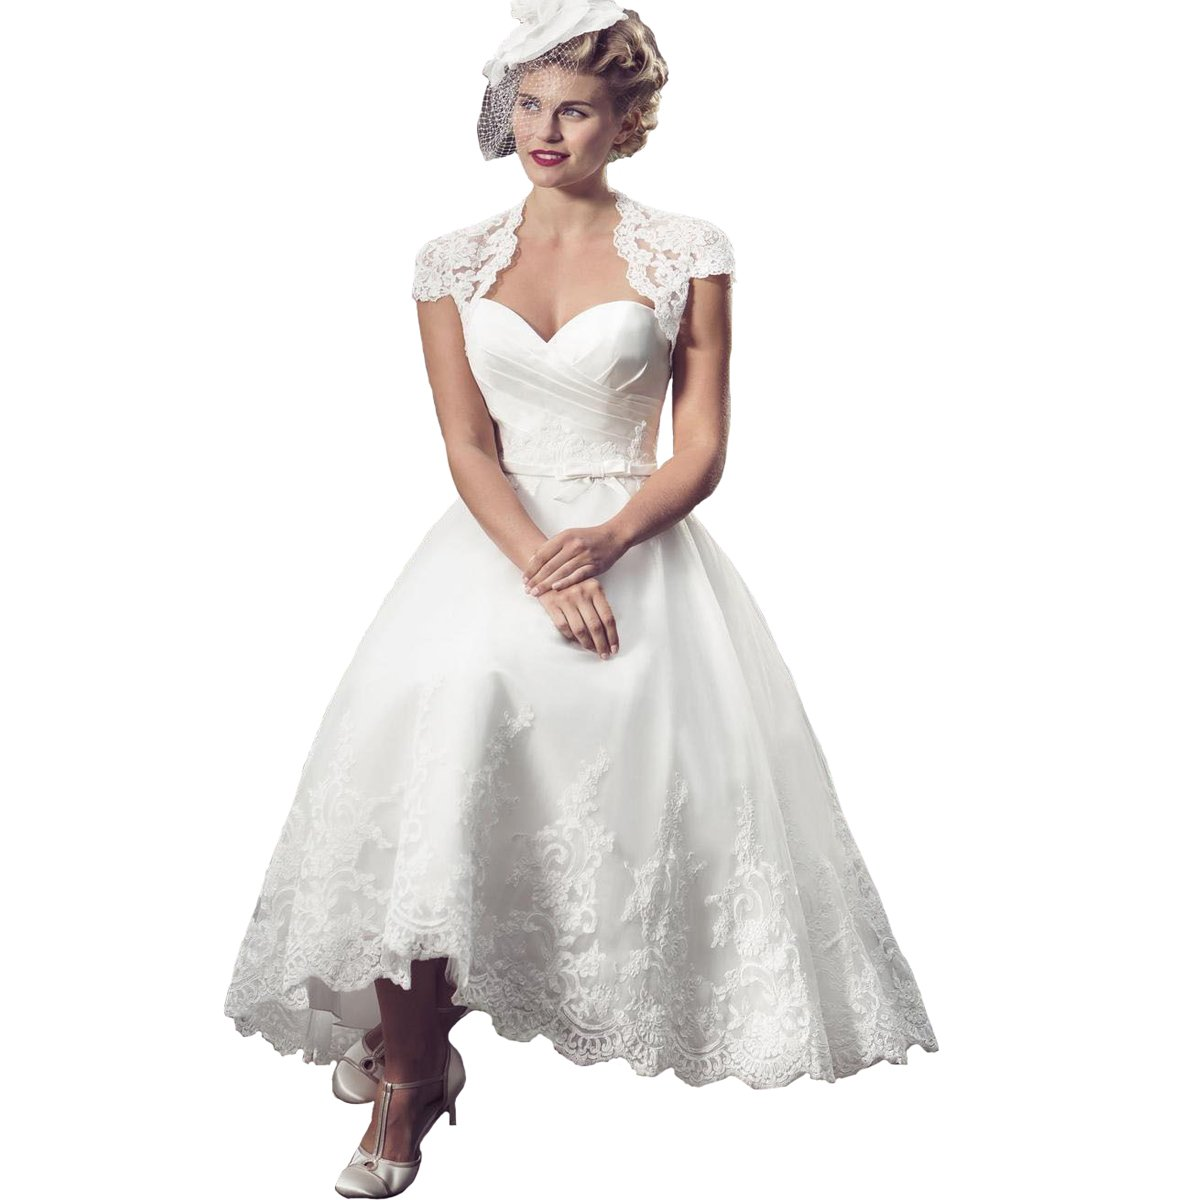 Vintage Style Wedding Dresses, Vintage Inspired Wedding Gowns Yuxin Lace Vintage Sweetheart Appliques Tea Length Wedding Dress 2018 Short Cap Sleeves A line Bridal Gown $119.00 AT vintagedancer.com